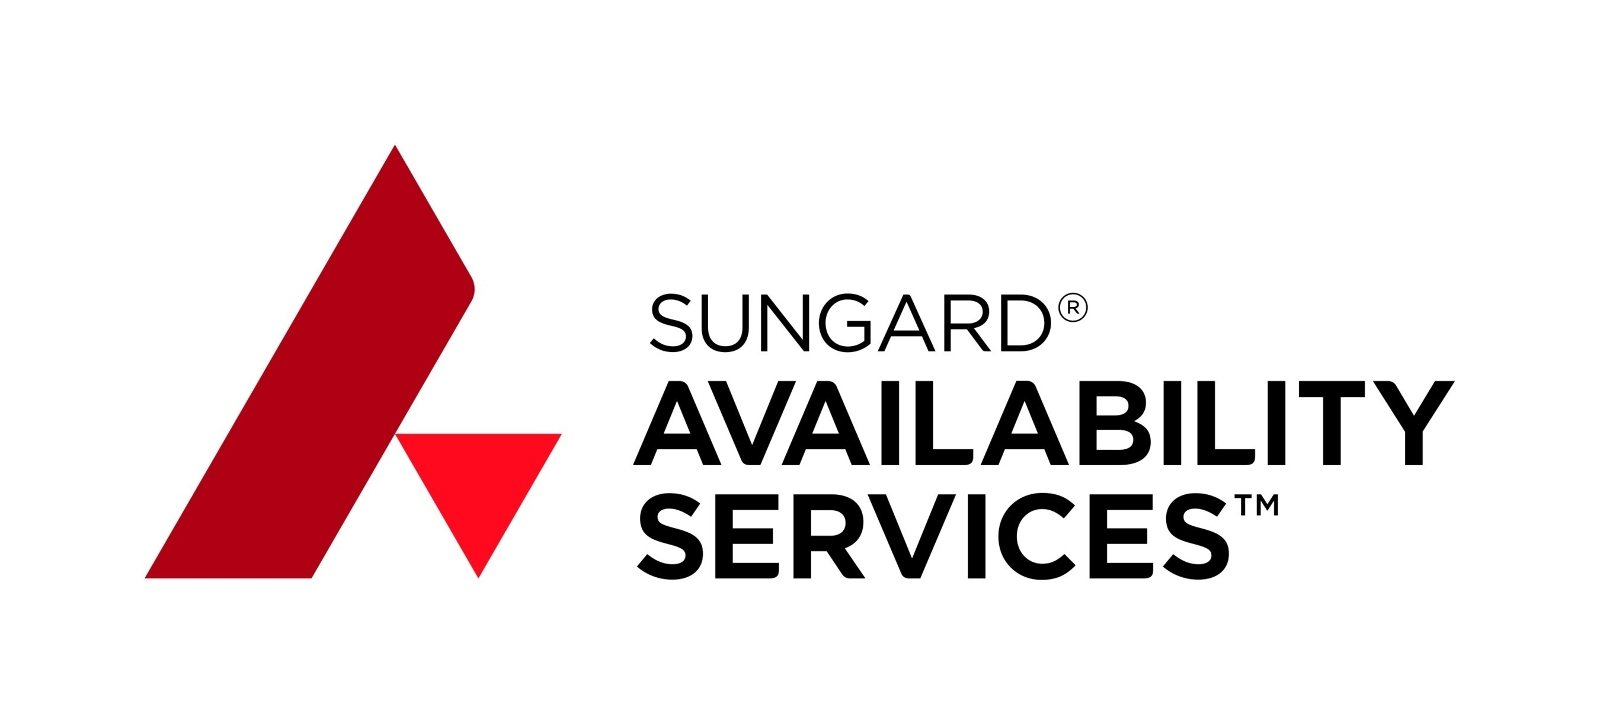 Sungard Availability Services Hires Carmel Owens as General Manager of Ireland